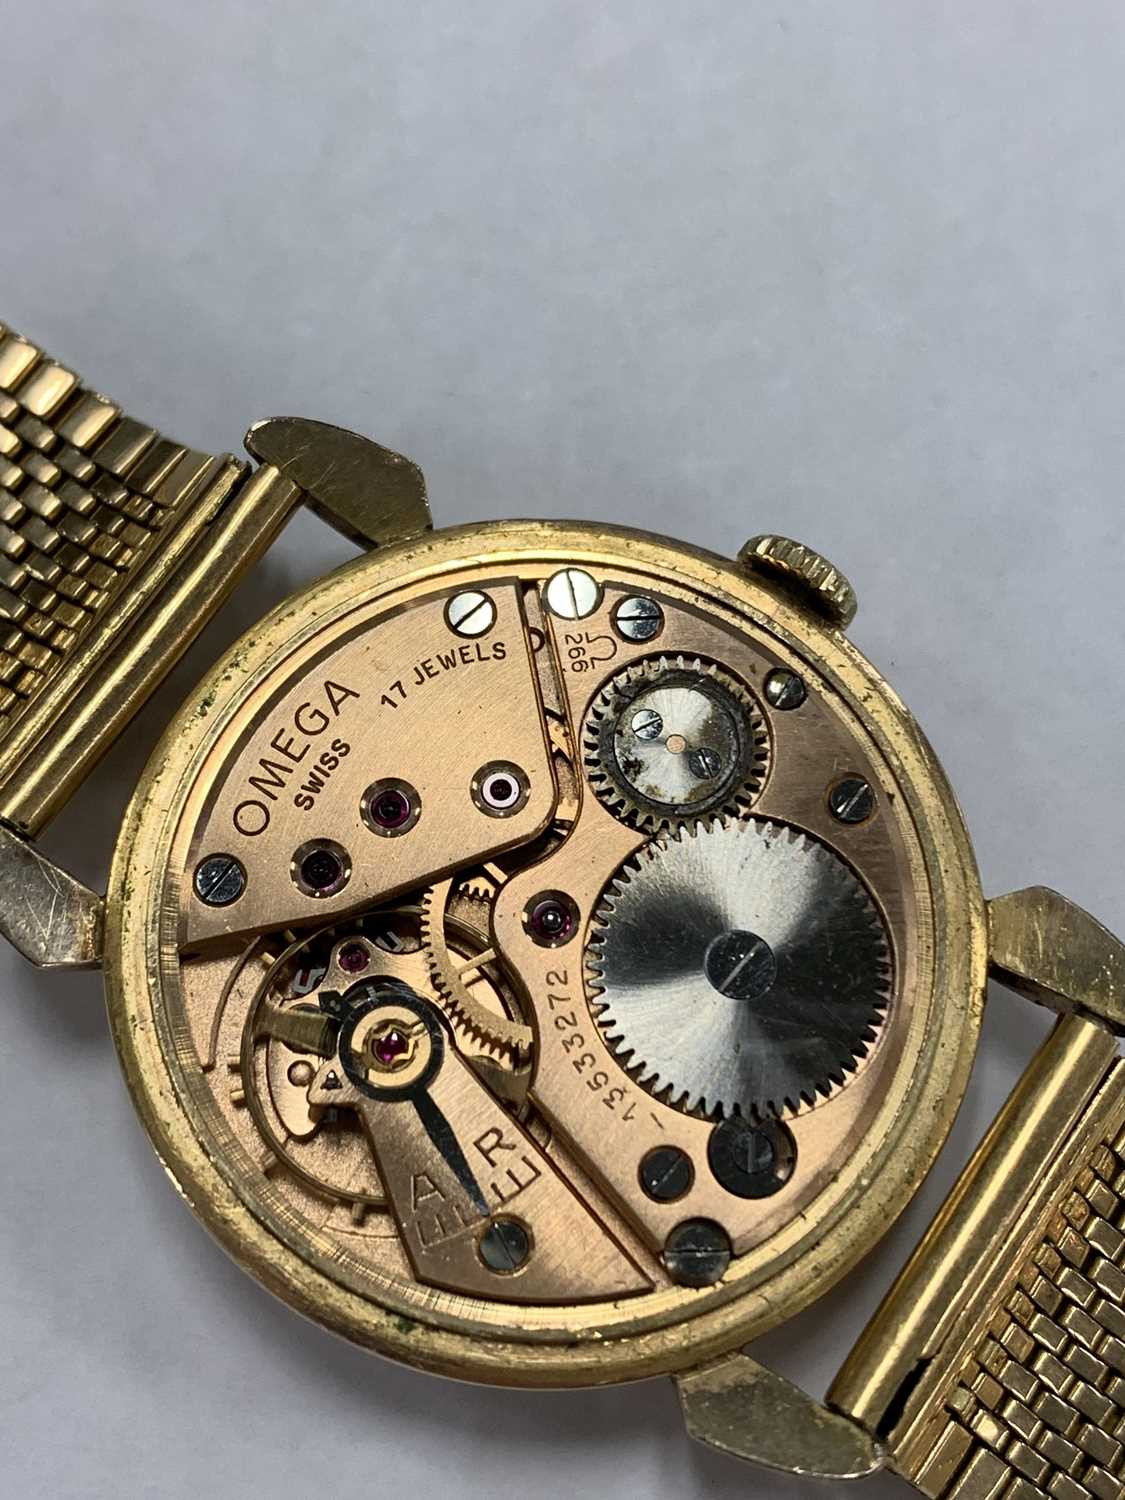 A Gentleman's gold plated Omega wristwatch with yellow metal bracelet - Image 7 of 9